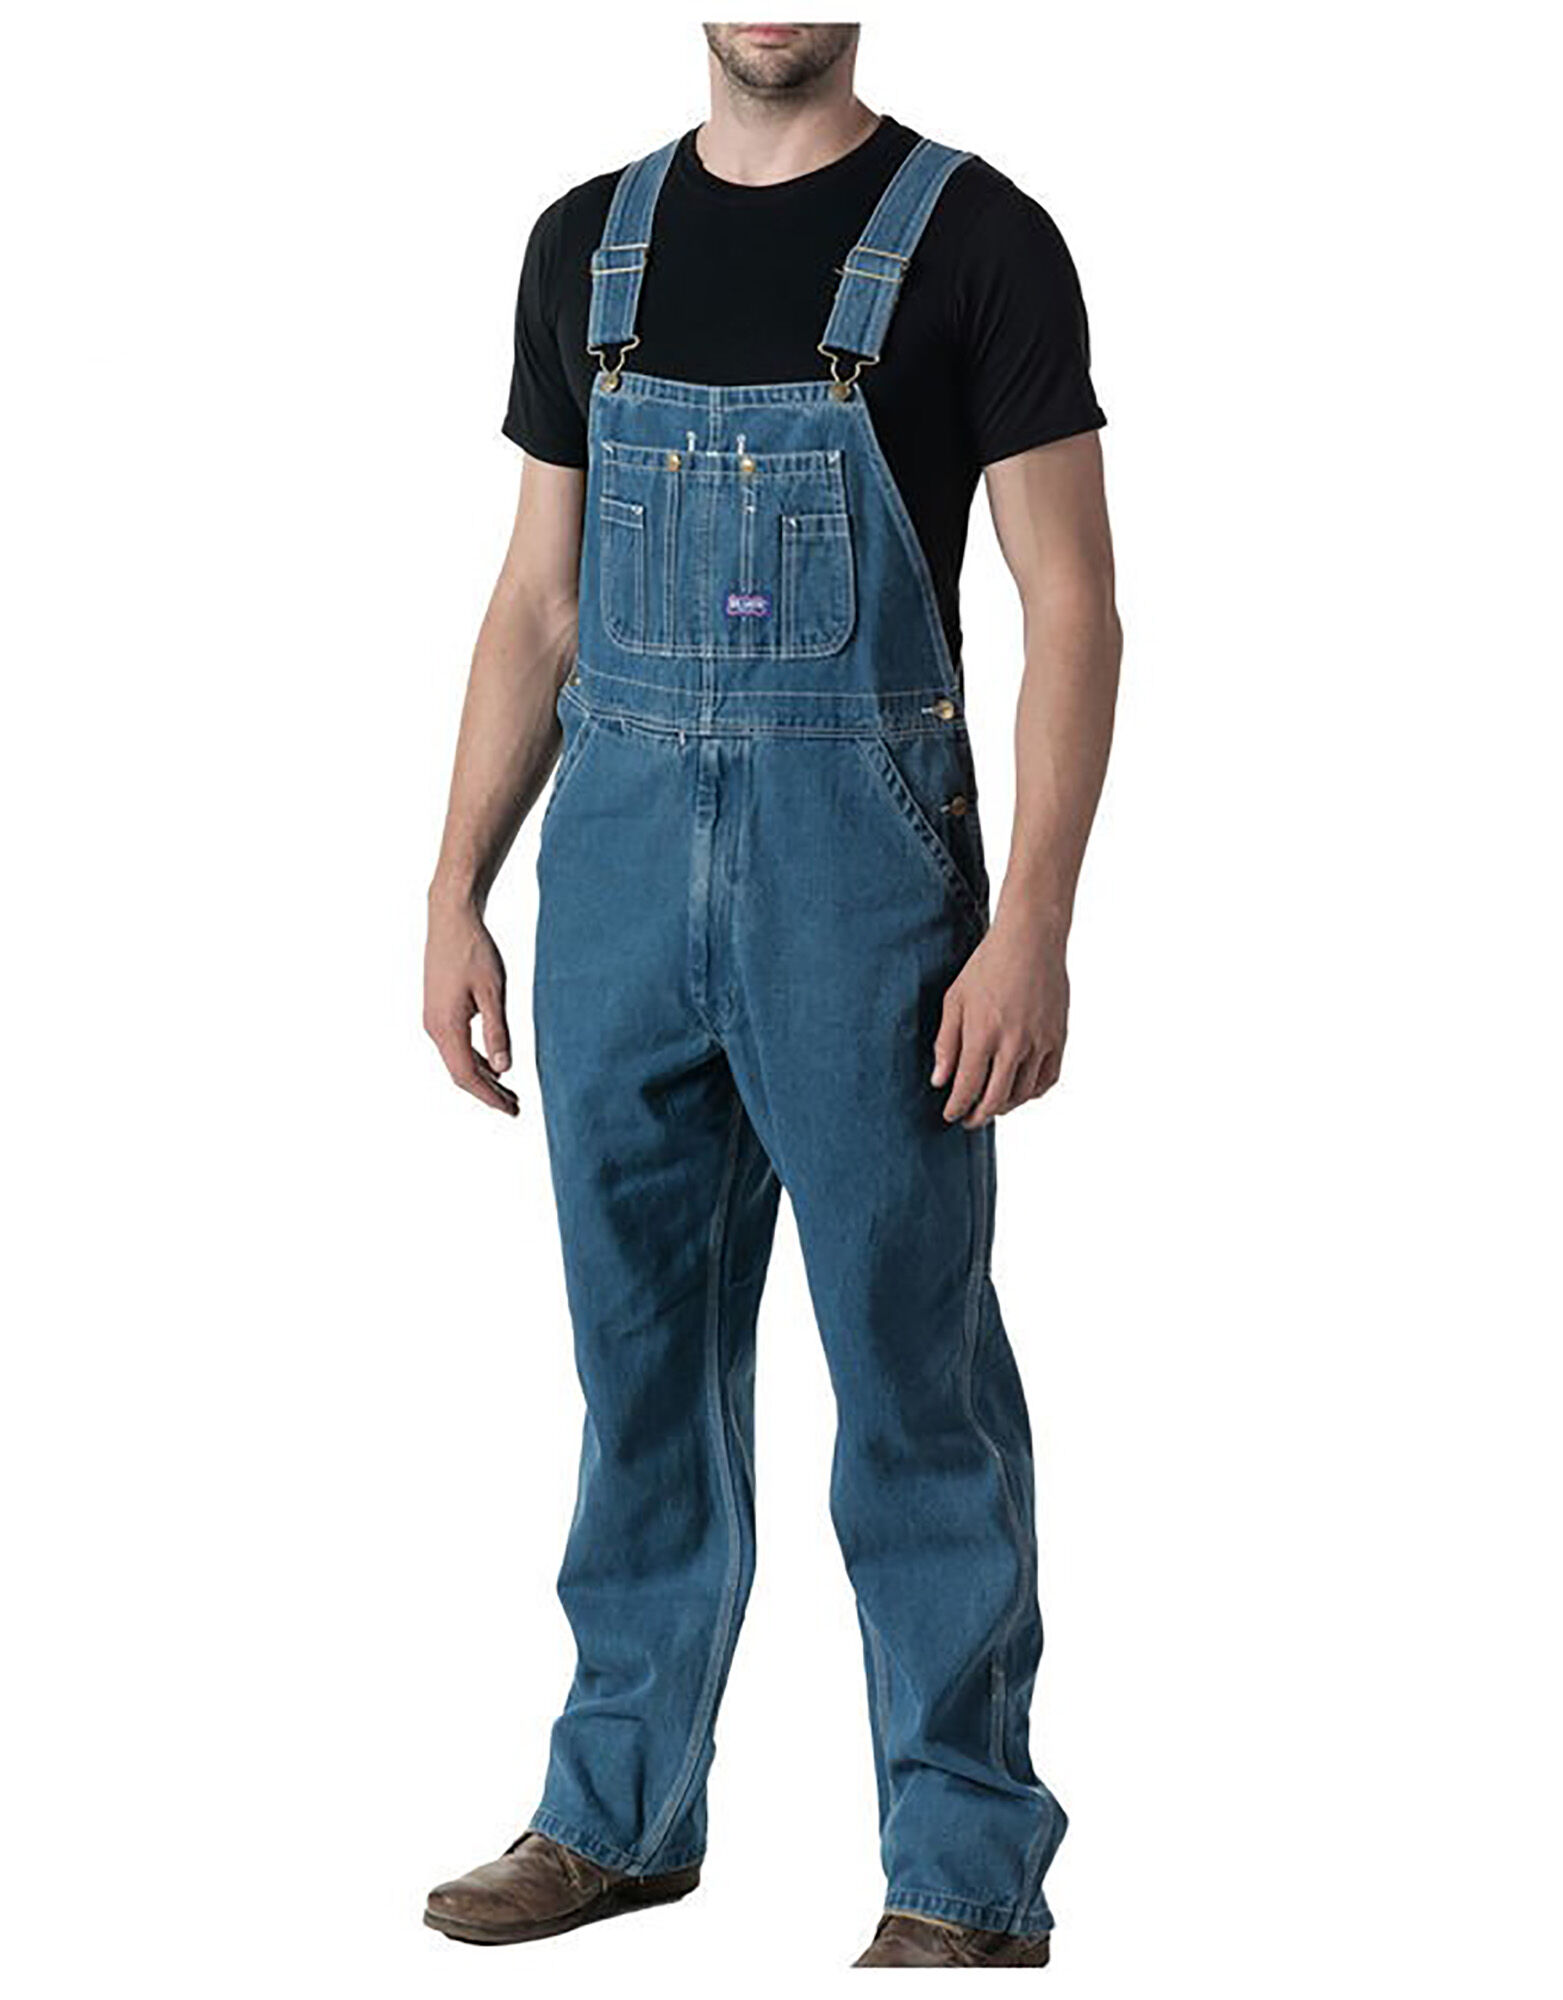 Rather than run the risk of ruining your favorite pair of jeans, slip on a pair of men's overalls before you head to work. Sears' selection includes traditional denim with triple stitching for added durability as well as white painter's bib overalls.